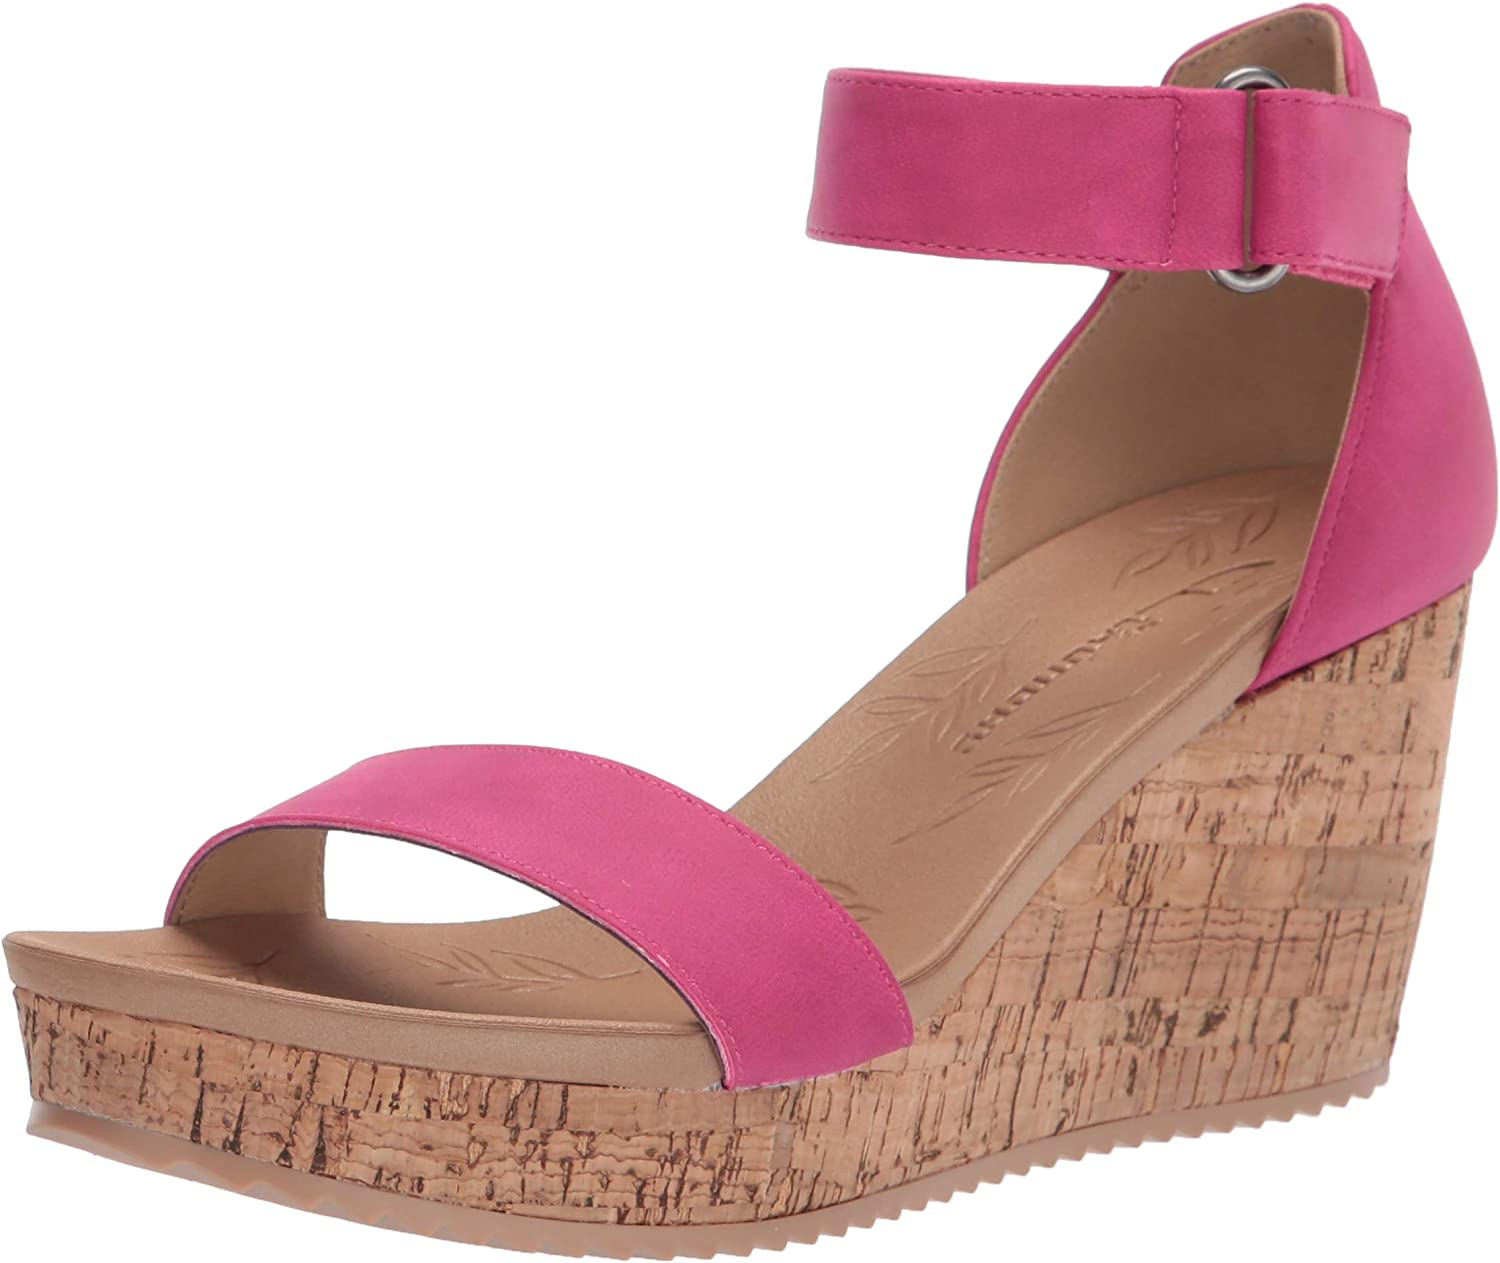 CL by Sale Special Max 45% OFF Price Chinese Laundry Wedge Kaya Women's Sandal